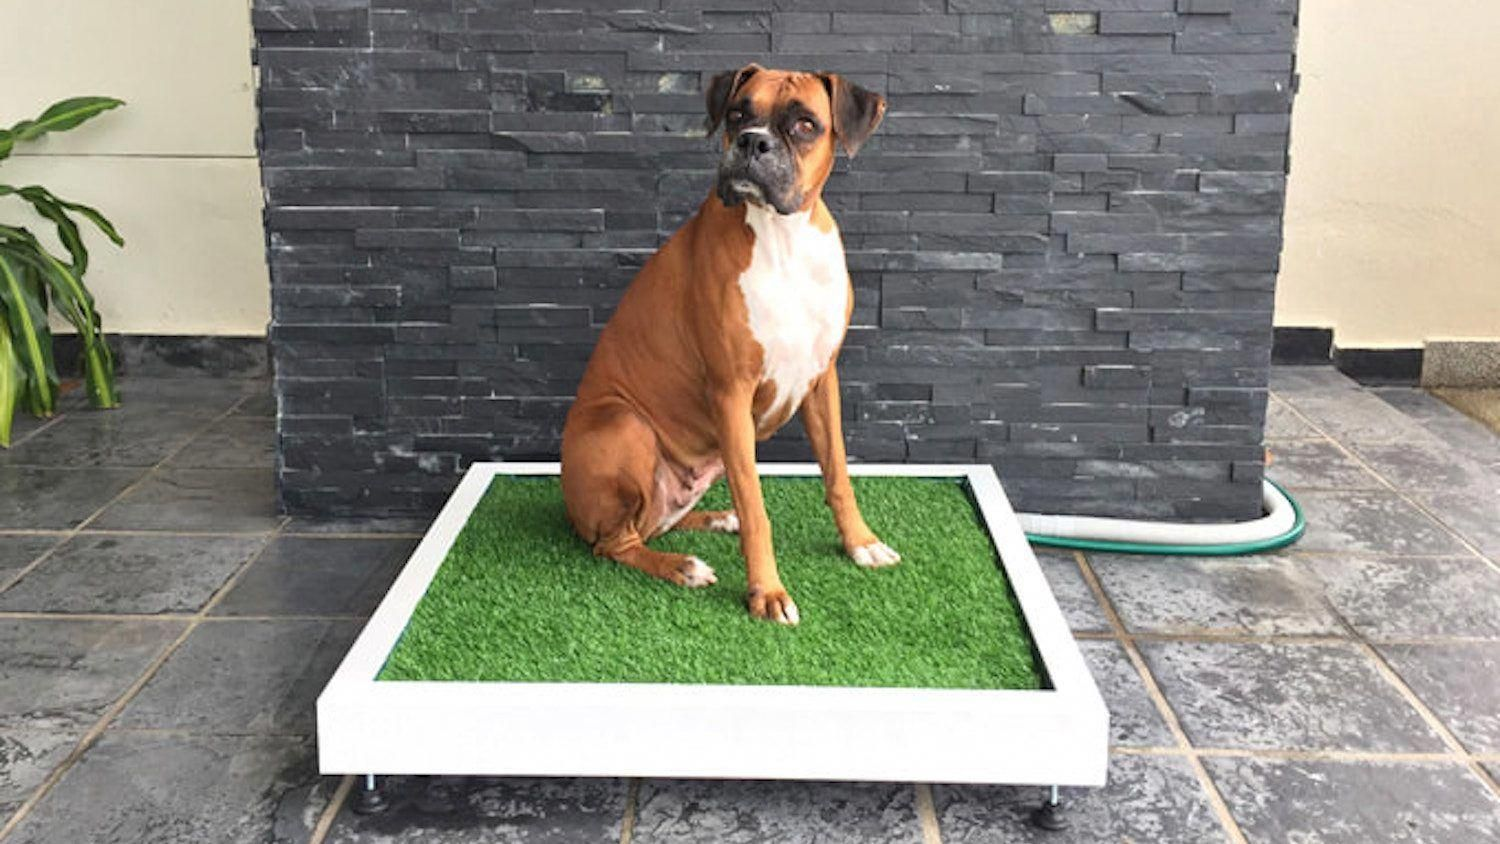 Educated Recorded Cool Dog Training Check This Out Dog Toilet Aggressive Dog Dog Training